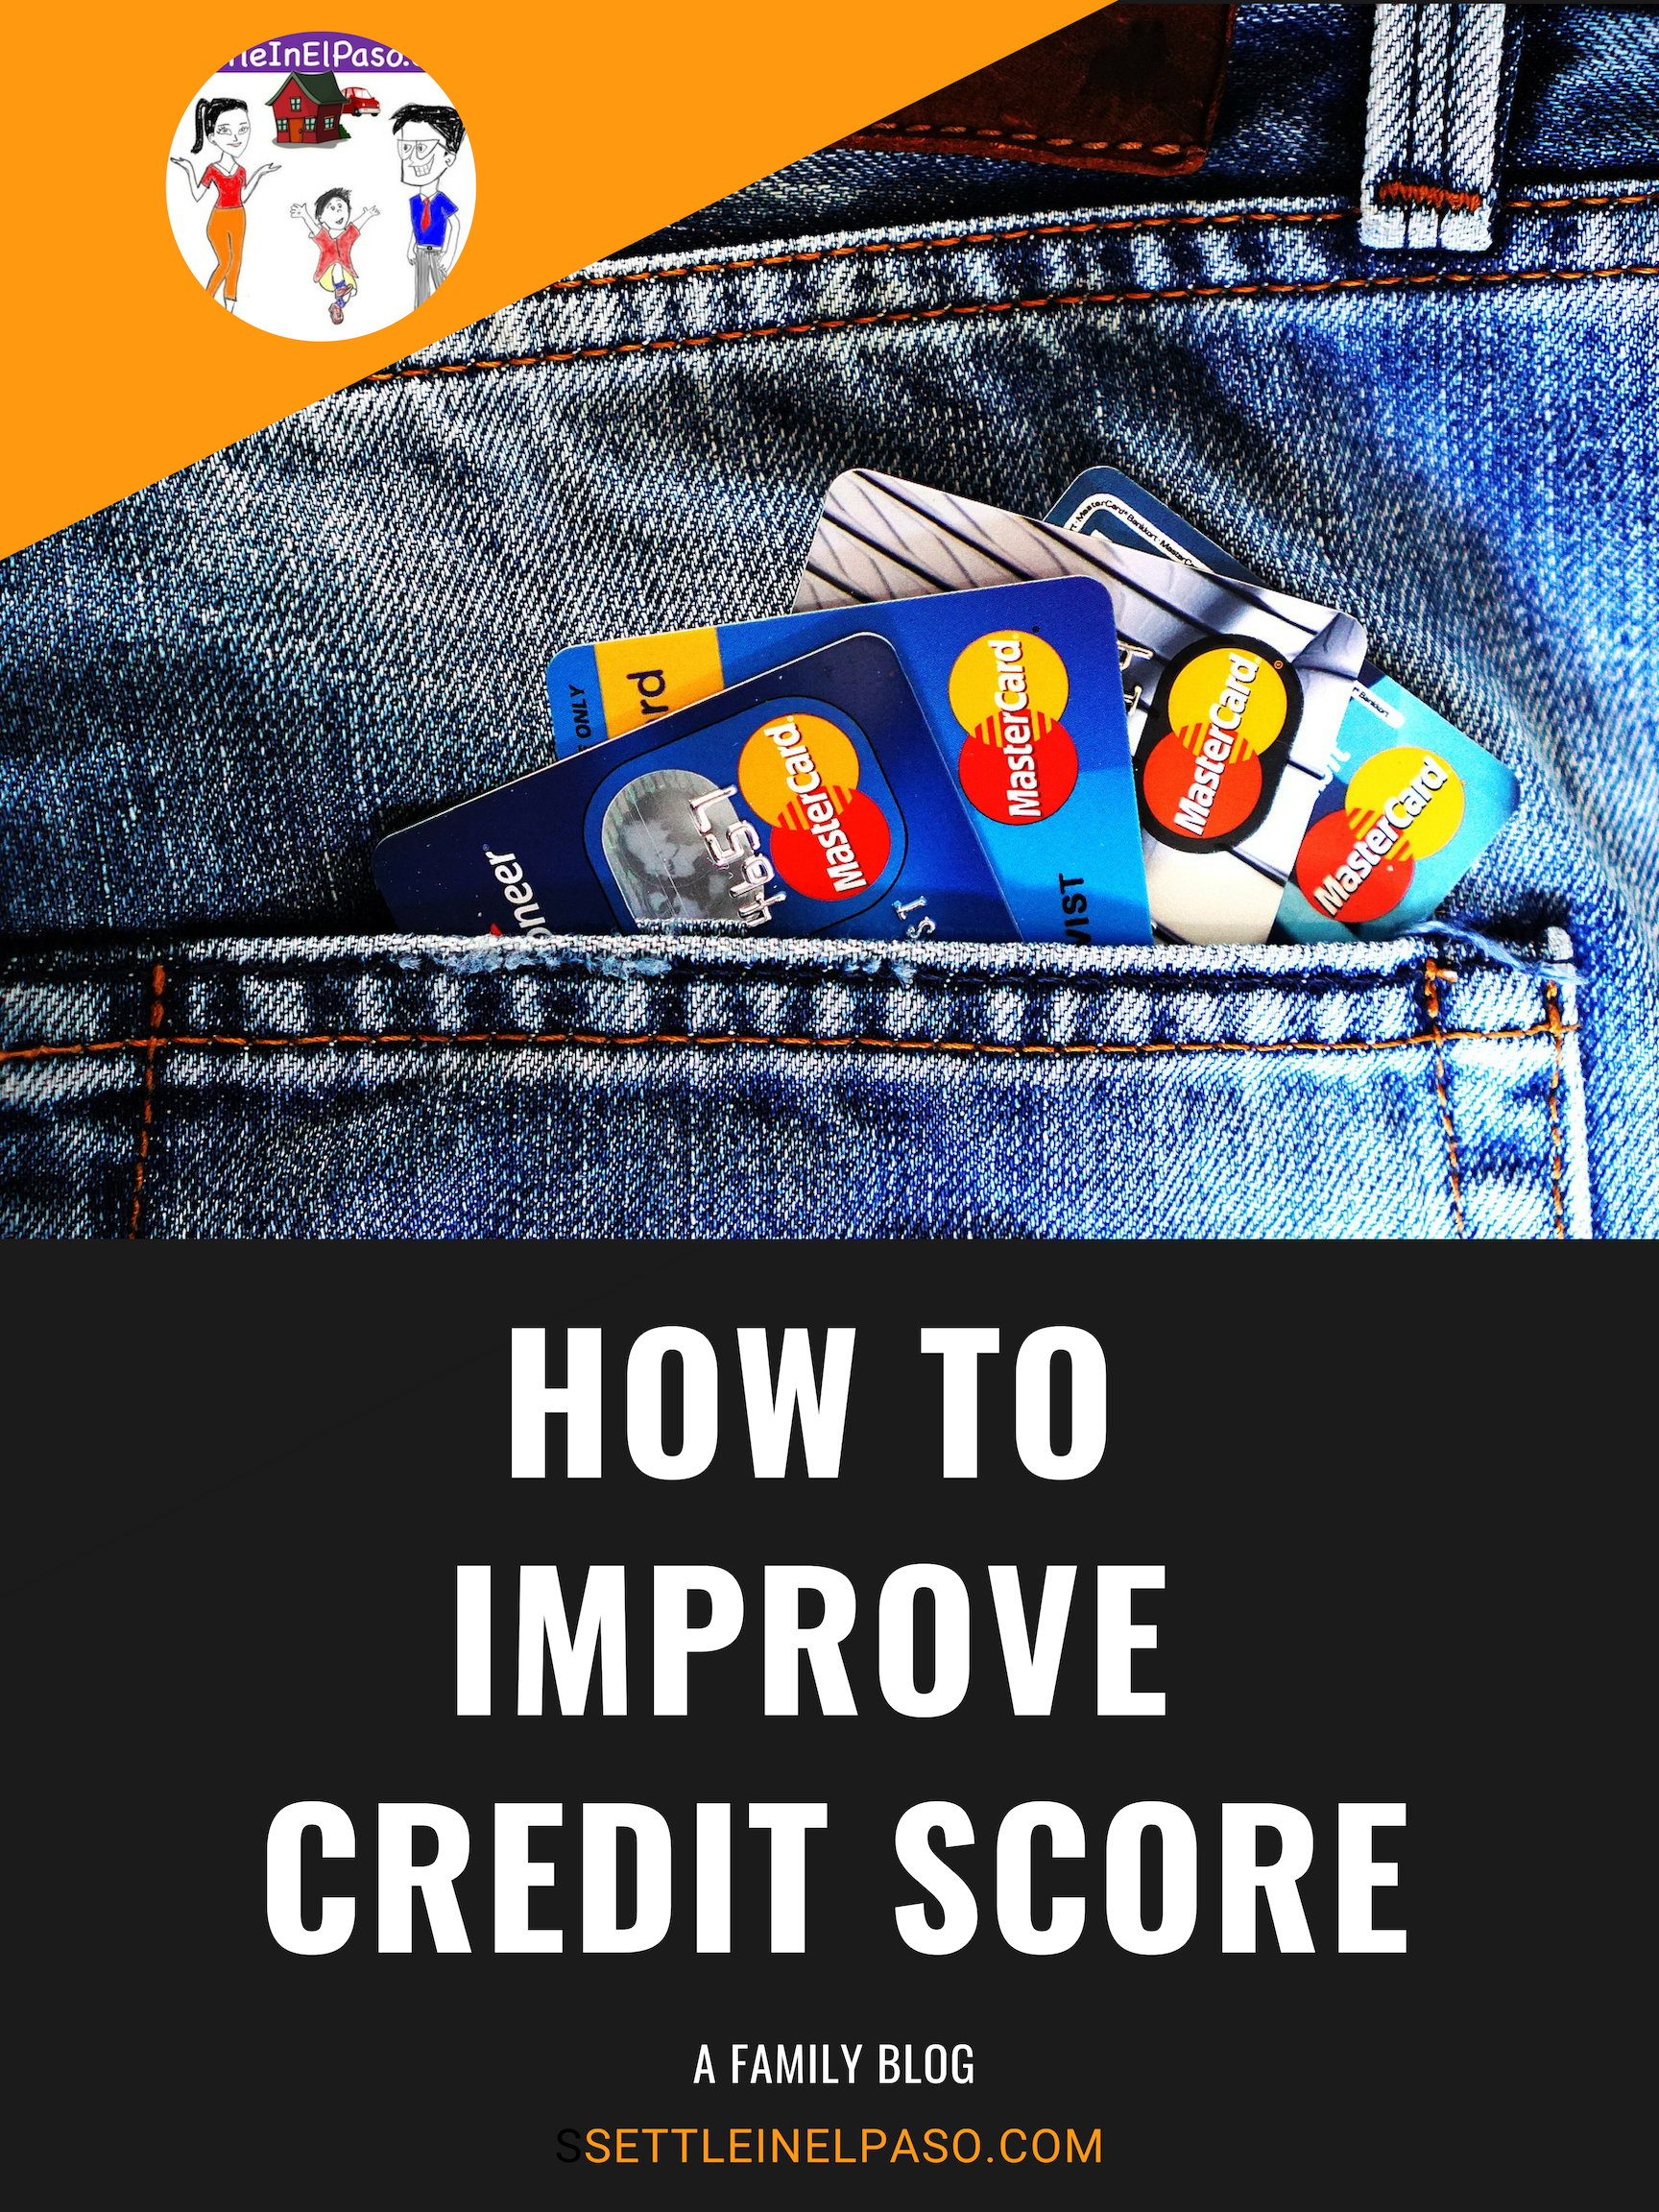 How to improve credit score. Do not keep unpaid balances --- not even during the holiday season when you need to purchase Christmas gifts. #credit #creditplanning #saving #money #moneyplanning